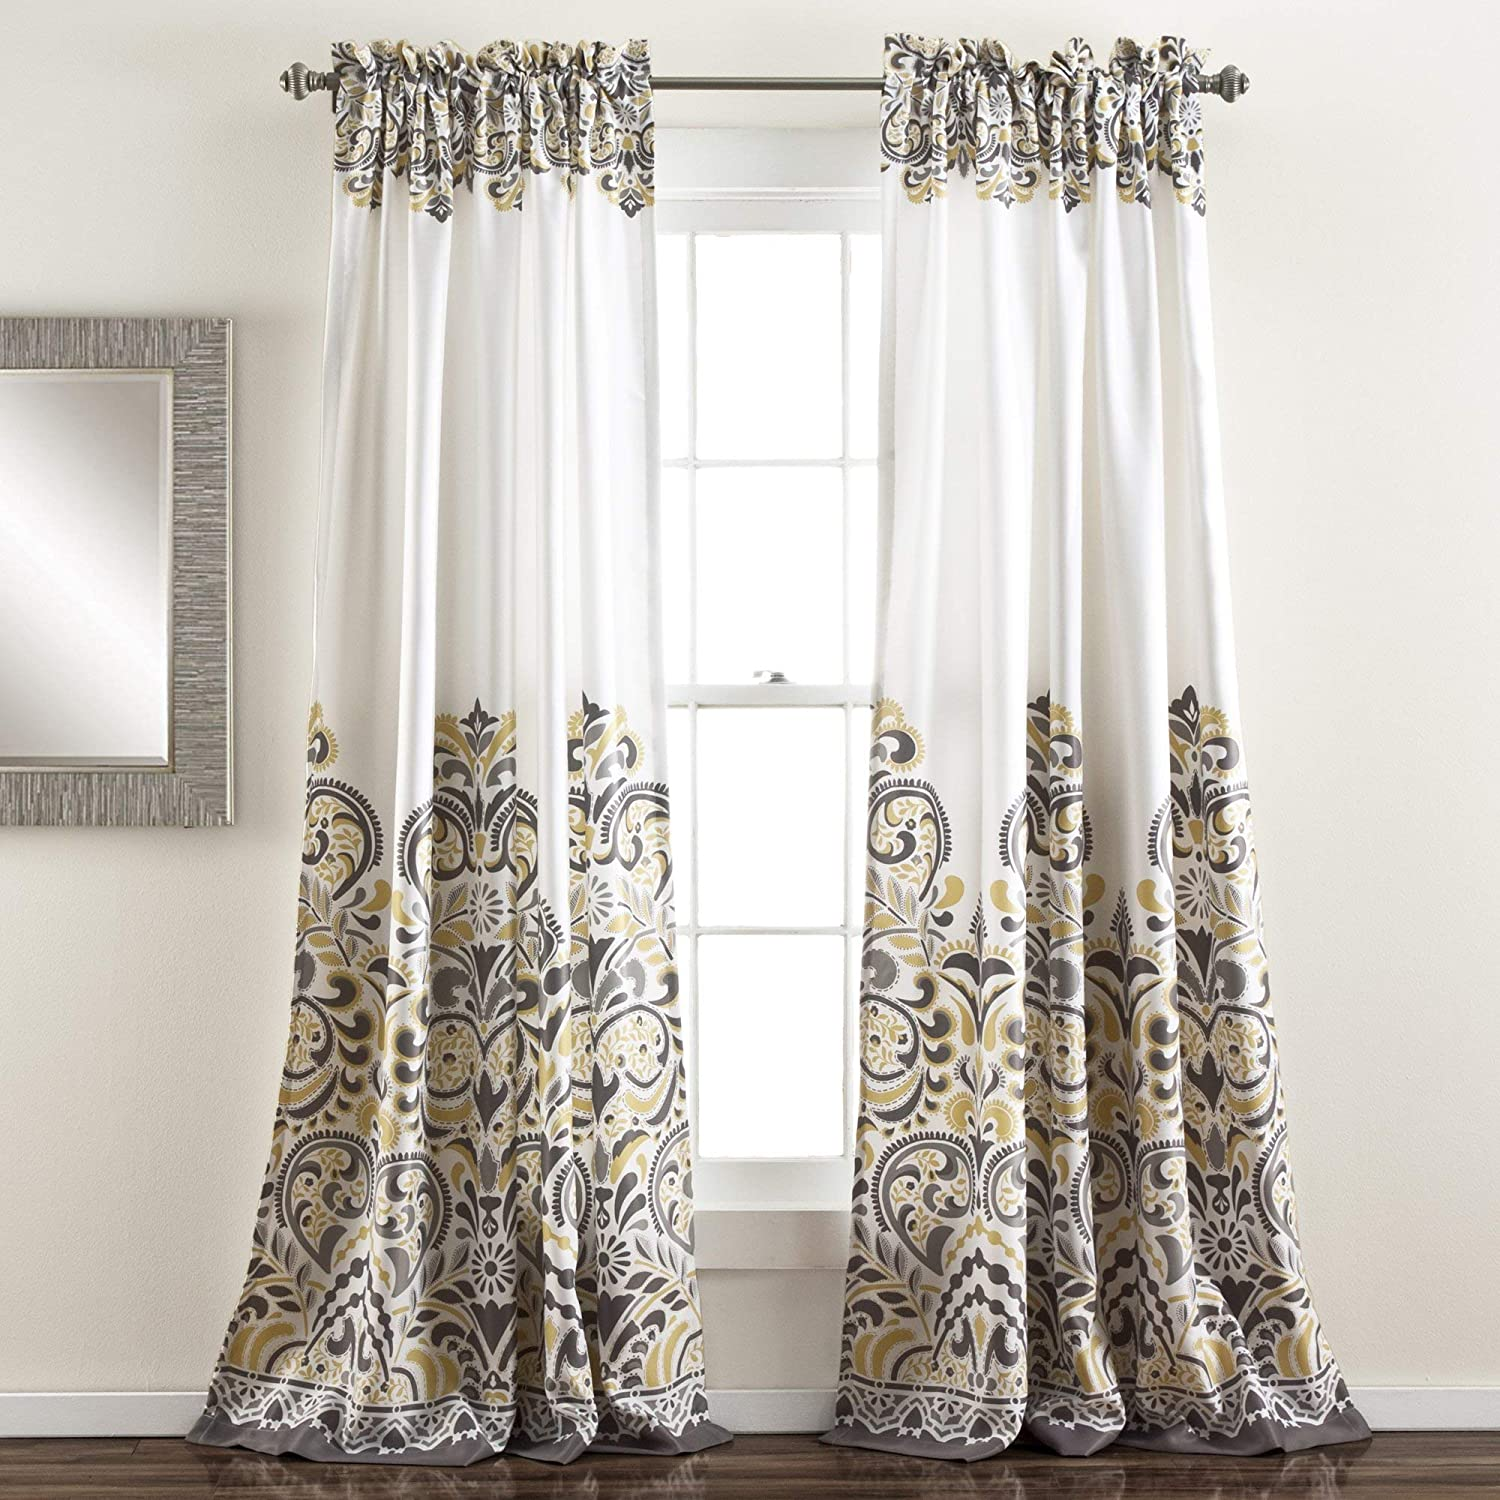 "Lush Decor Clara Curtains Paisley Damask Print Bohemian Style Room Darkening Window Panel Set for Living, Dining, Bedroom (Pair) 84"" x 52"" Gray and Yellow"